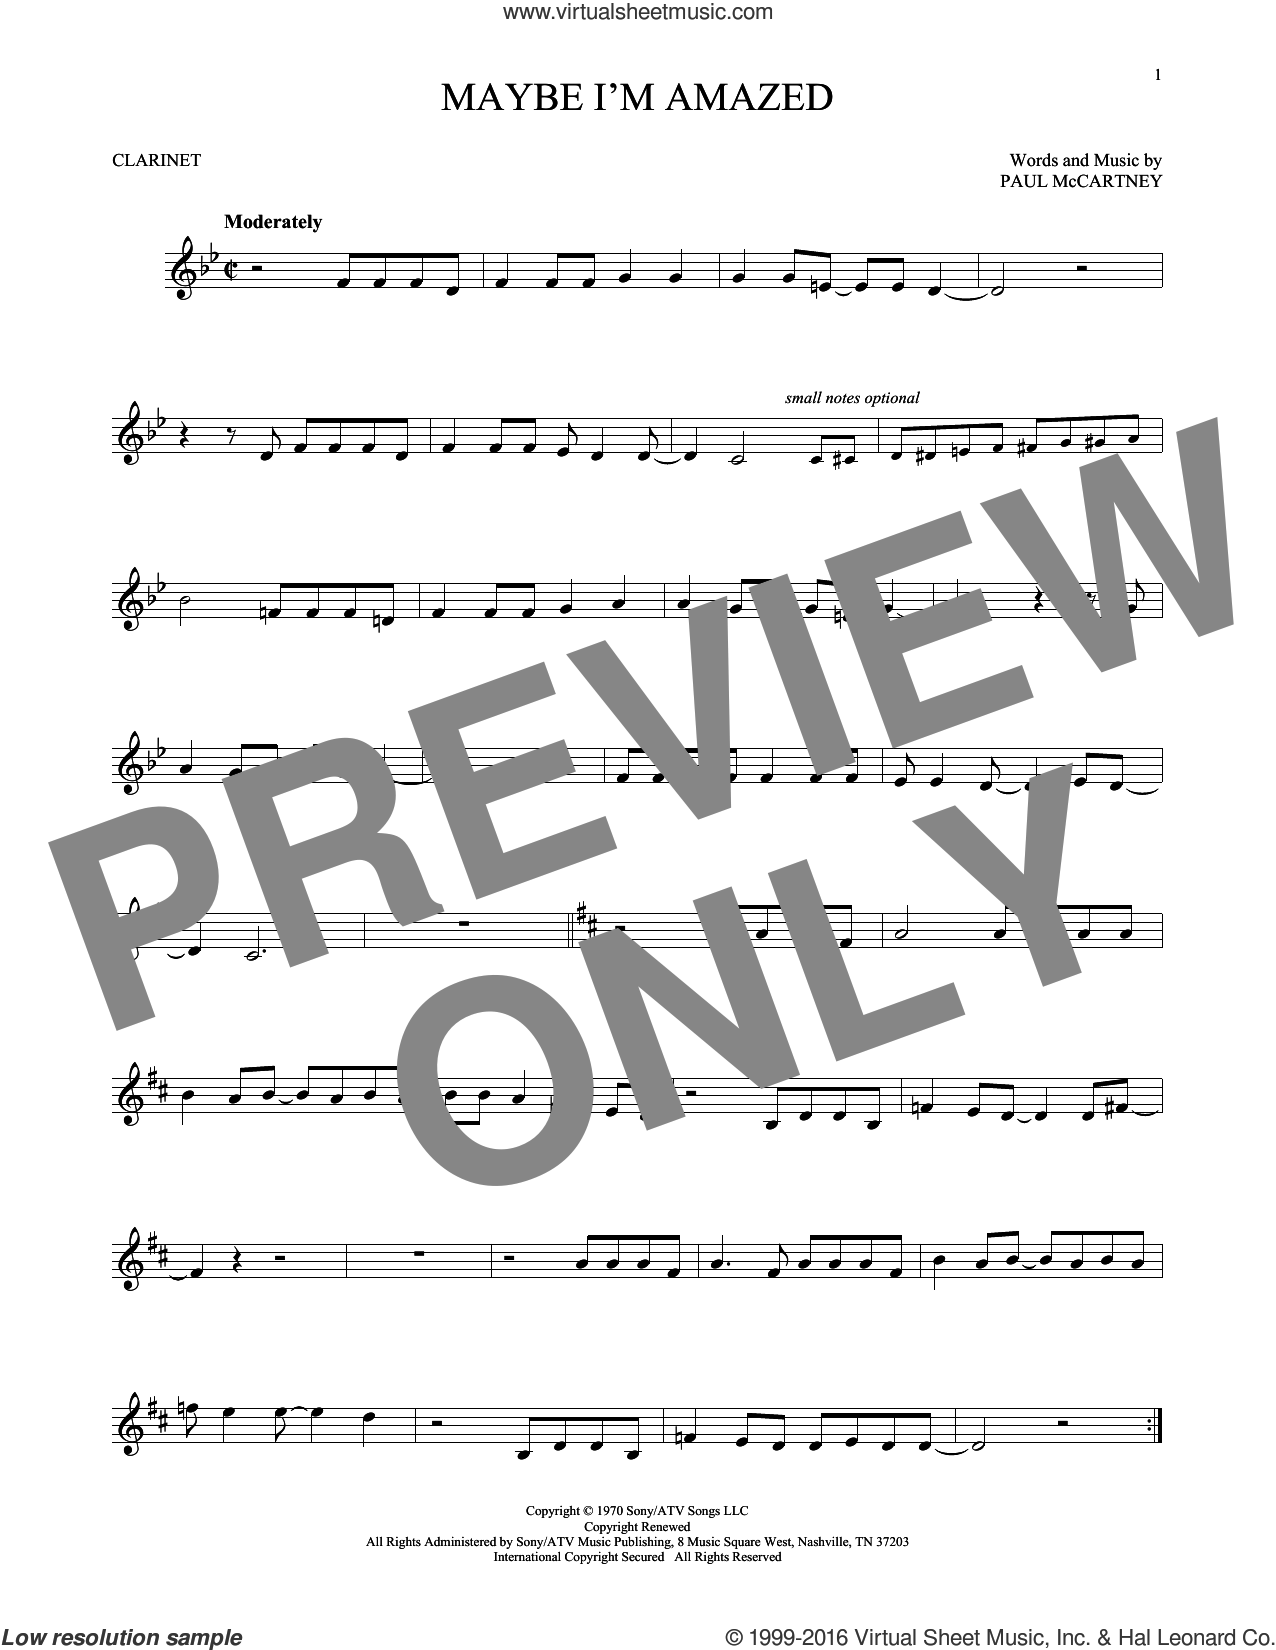 Maybe I'm Amazed sheet music for clarinet solo by Paul McCartney, intermediate skill level